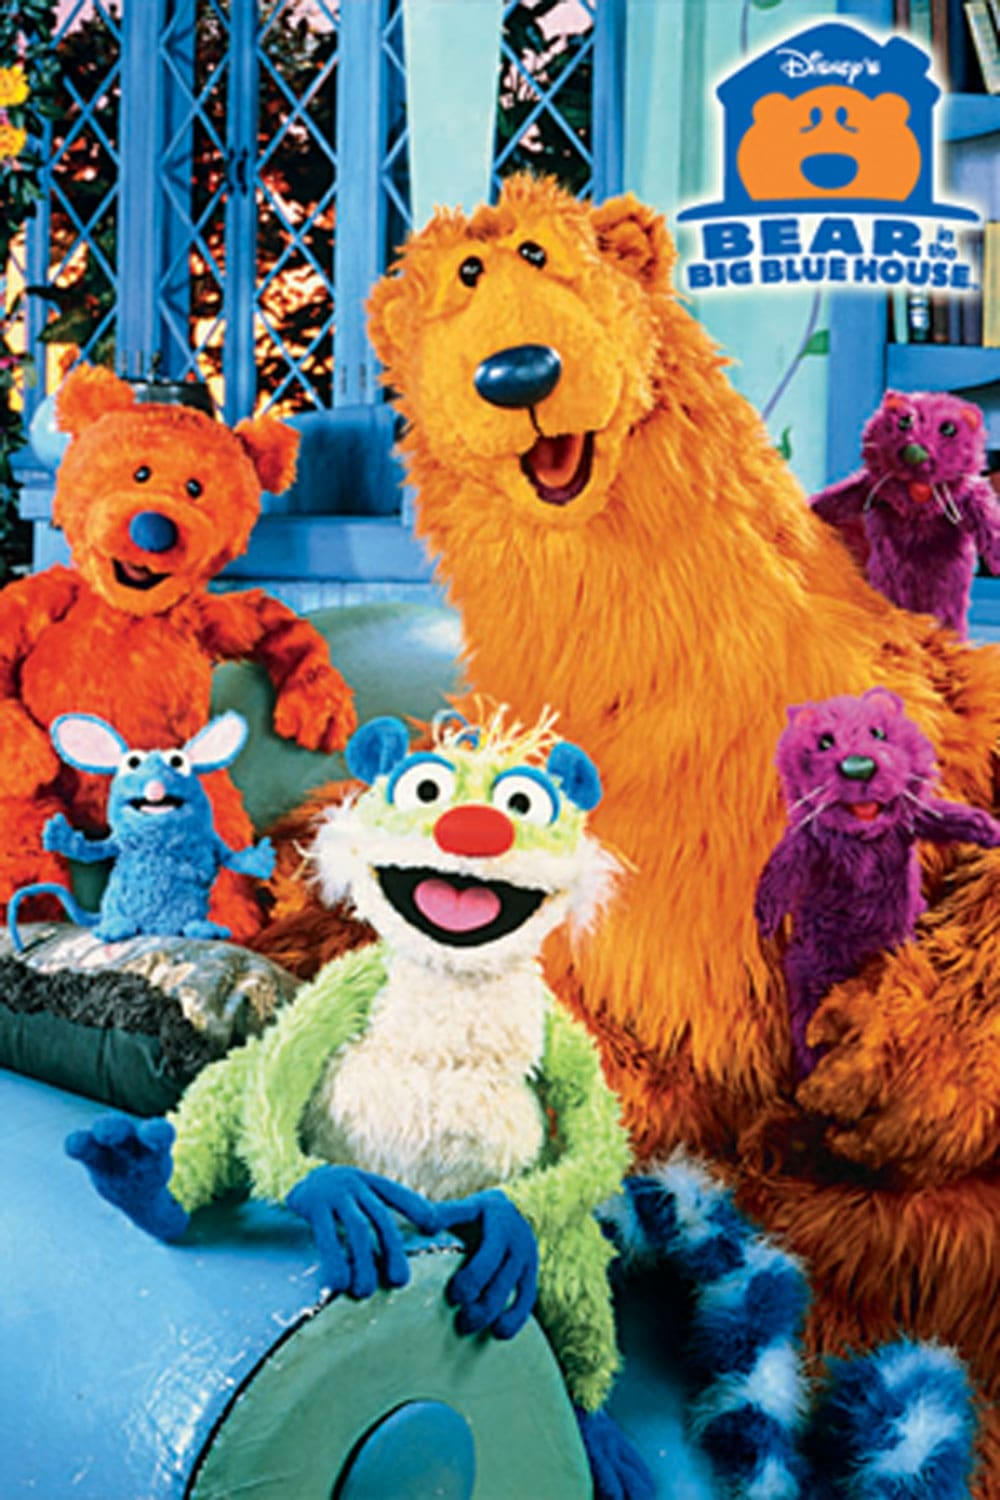 Bear In The Big Blue House Woodland Valley : house, woodland, valley, House, Disney, Movies